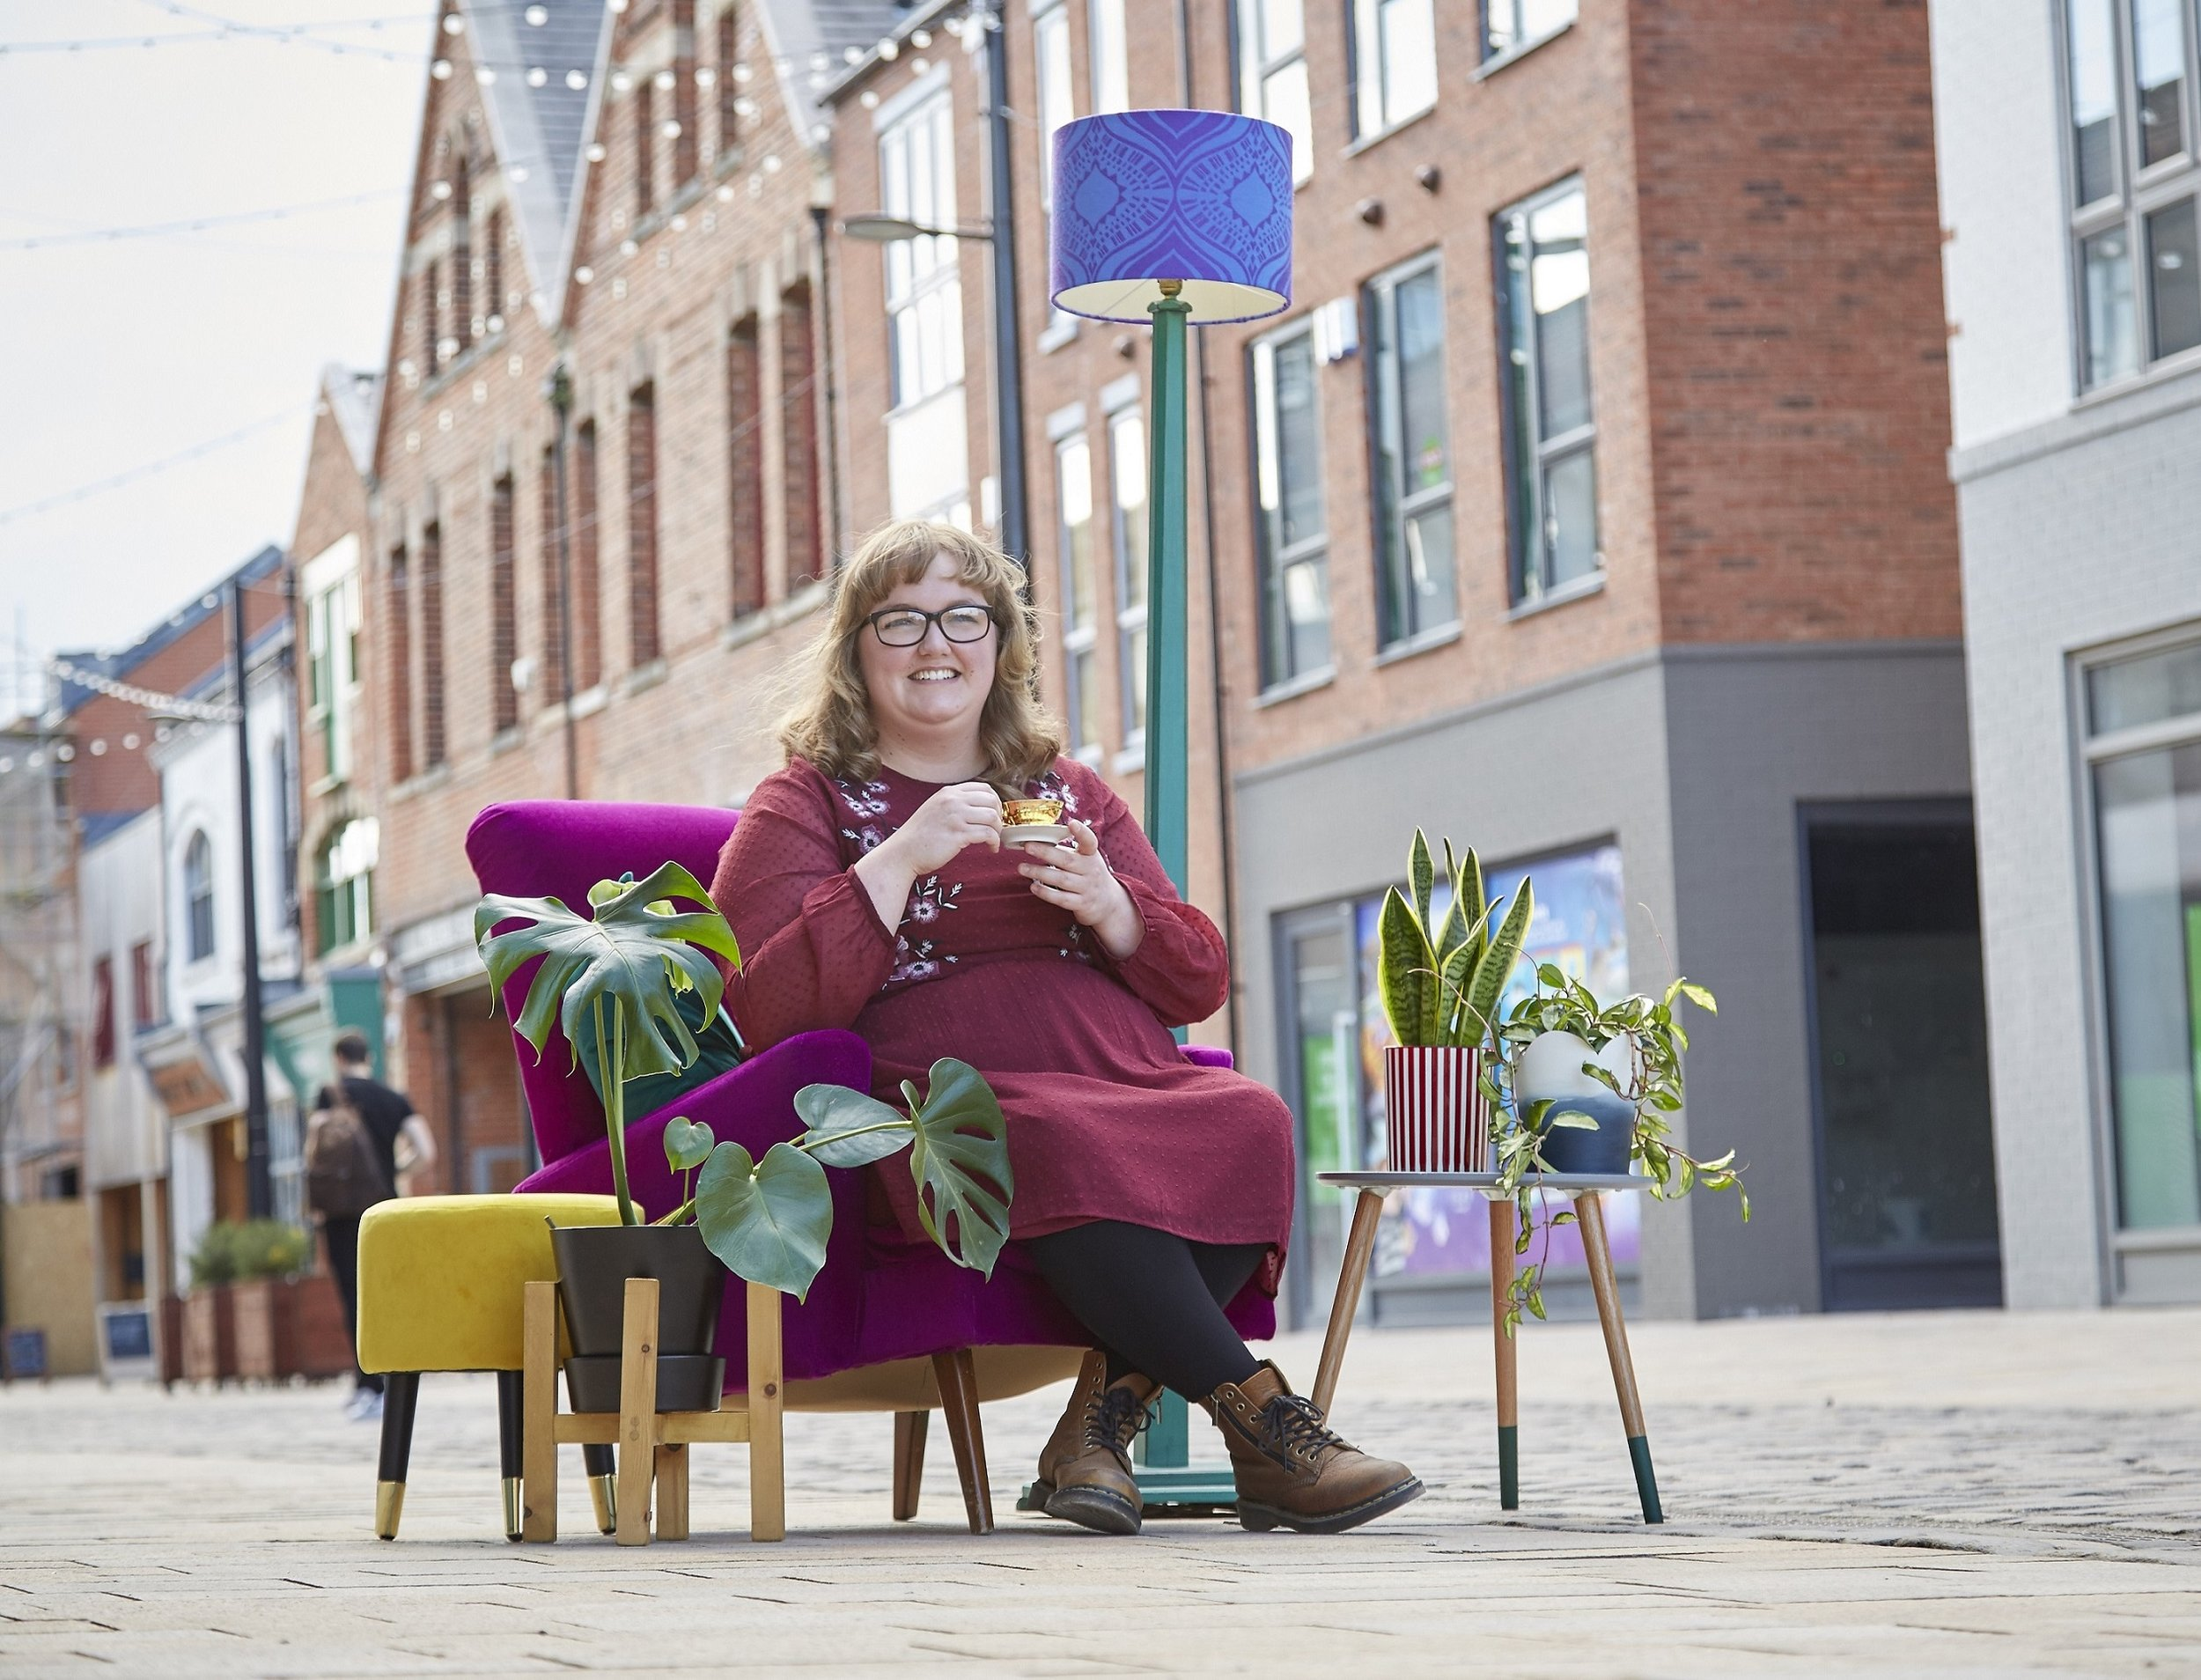 Owner Lara Roberts is bringing her business selling upcycled decorative furniture and house plants to Humber Street in Hull's Fruit Market creative quarter.